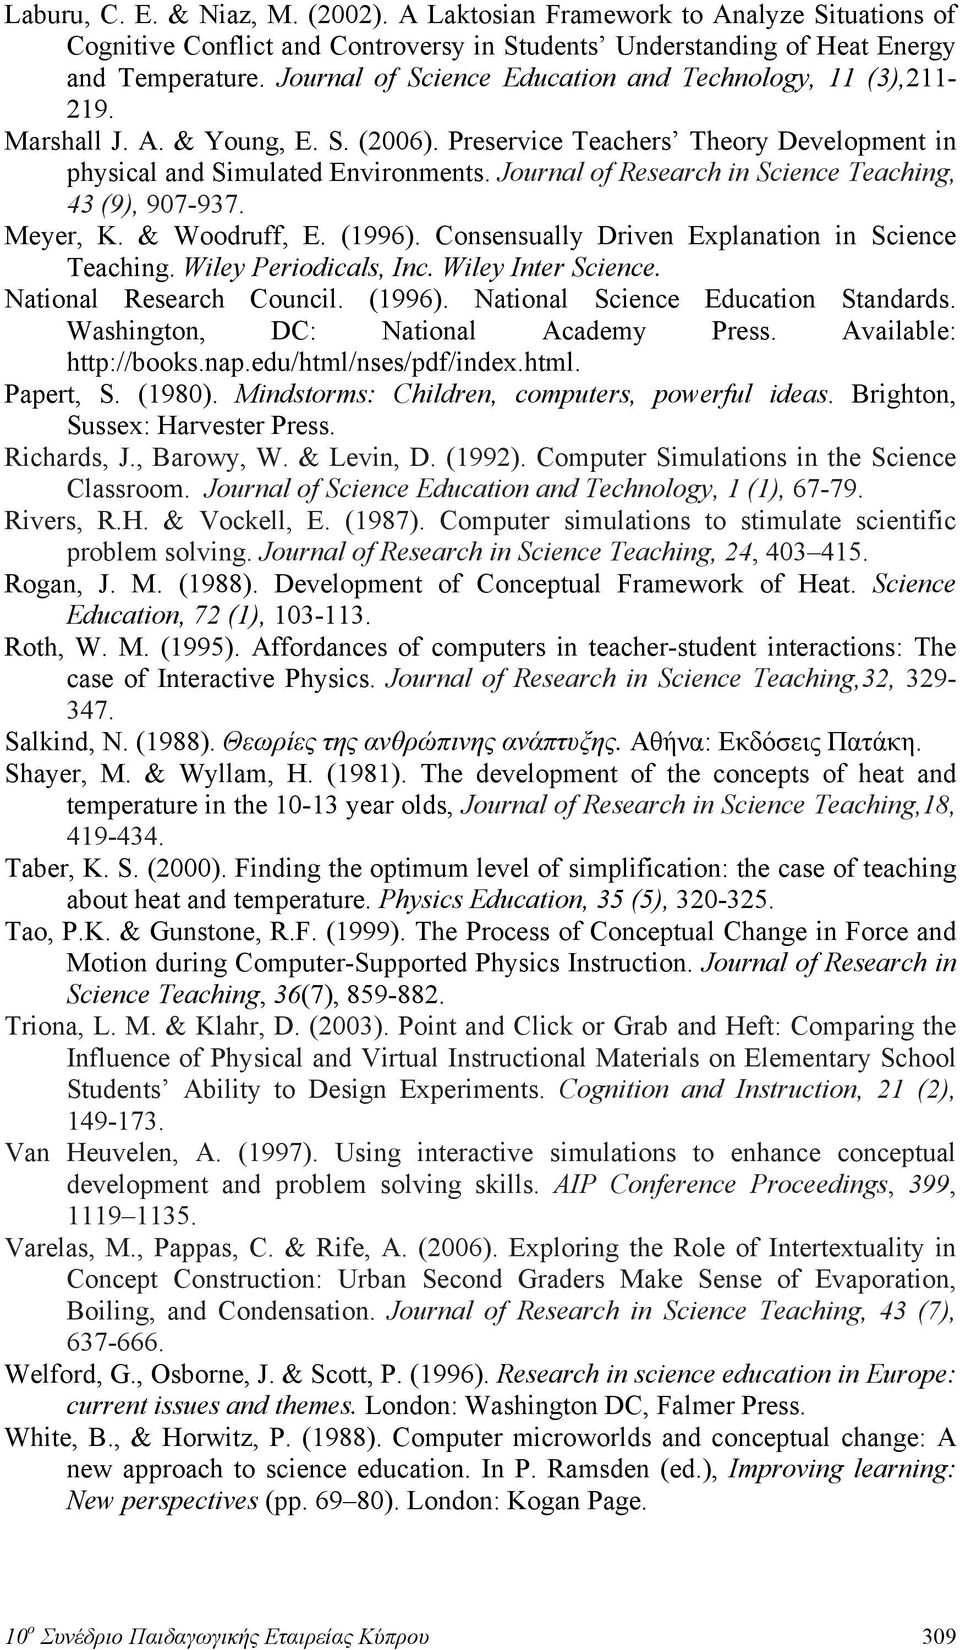 Journal of Research in Science Teaching, 43 (9), 907-937. Meyer, K. & Woodruff, E. (1996). Consensually Driven Explanation in Science Teaching. Wiley Periodicals, Inc. Wiley Inter Science.